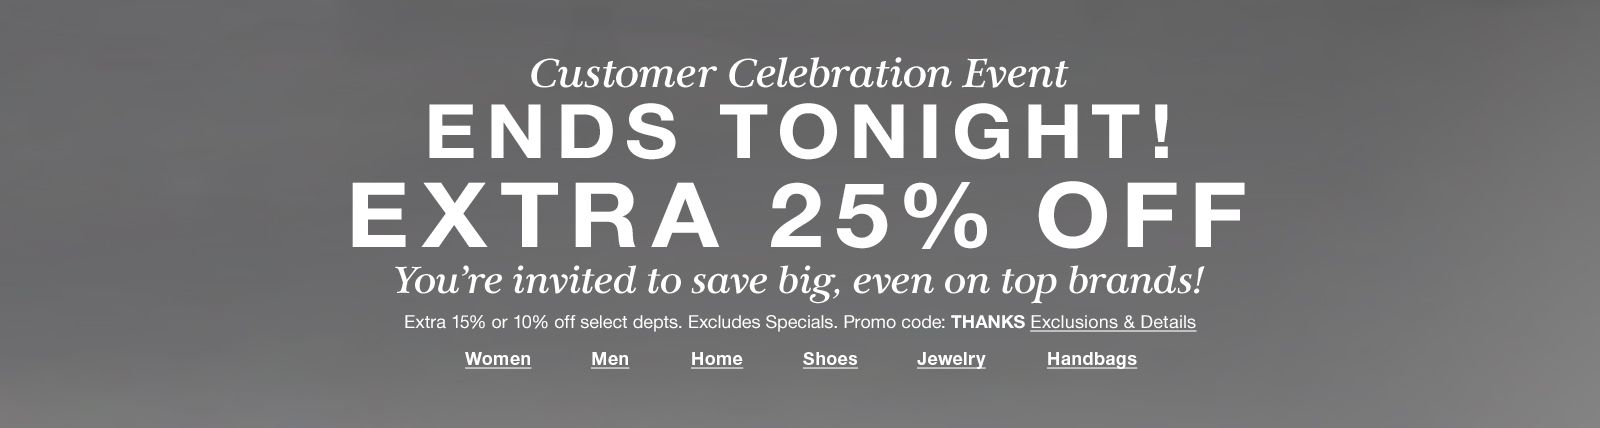 Customer Celebration Event, Ends Tonight! Extra 25 percent off, Promo code: THANKS, Exclusions and Details, Women, Men, Home, Shoes, Jewelry, Handbags